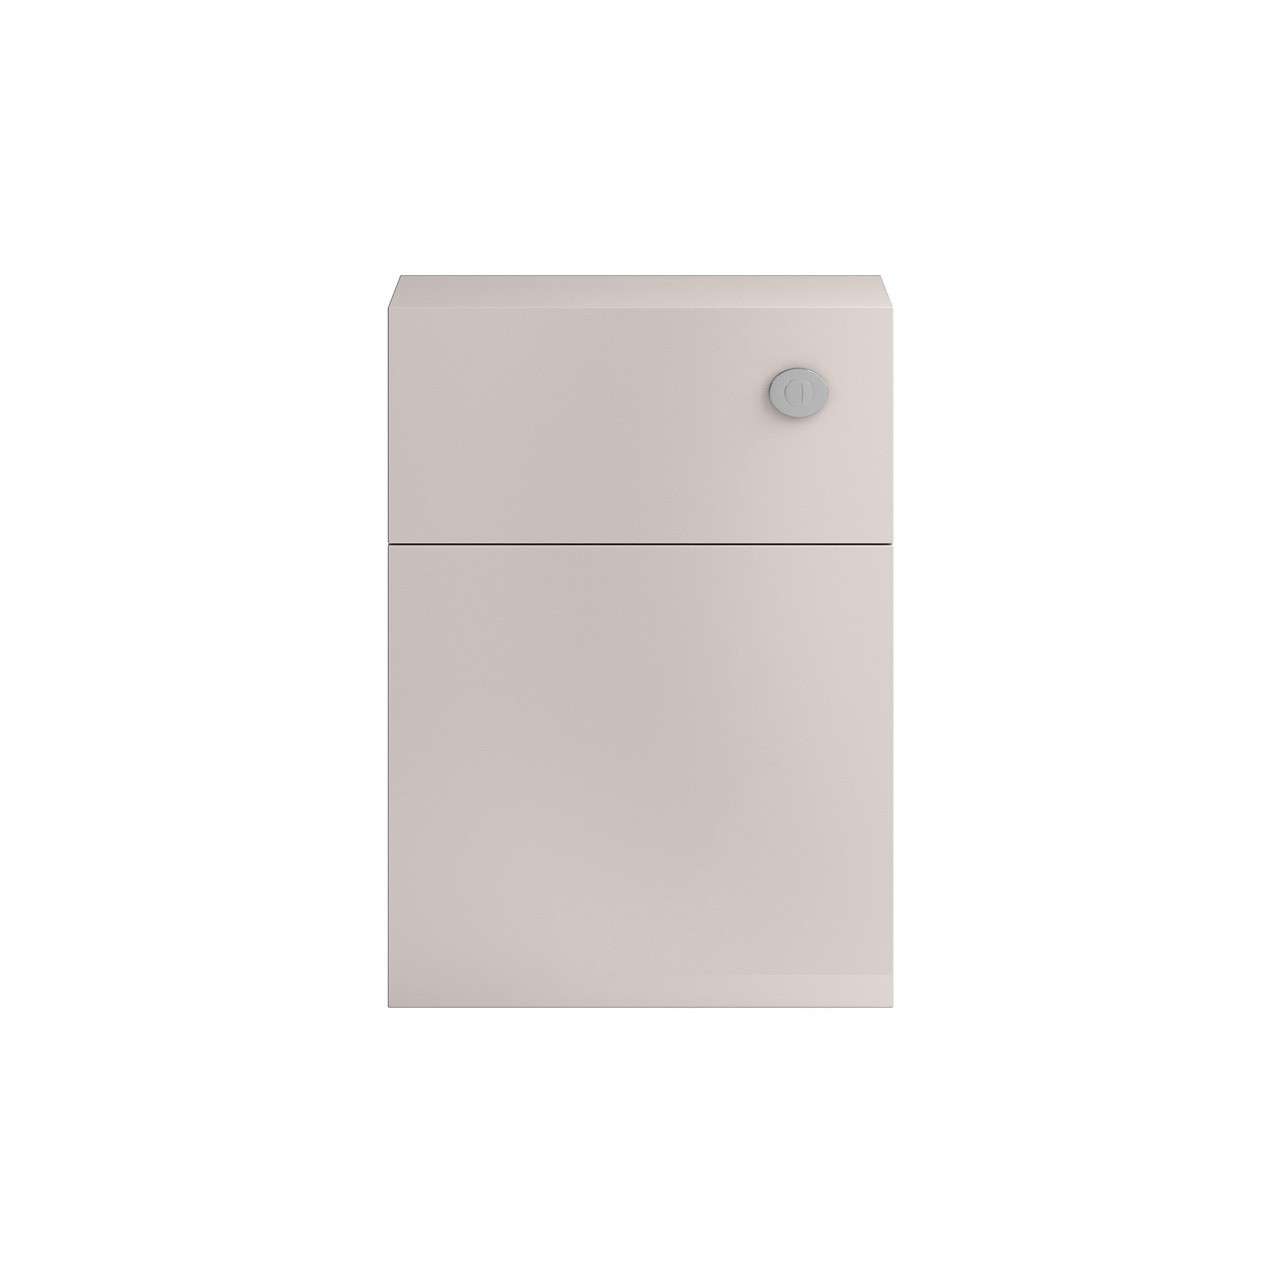 Hudson Reed Cashmere Gloss Apollo 600mm WC Unit - FMA746C